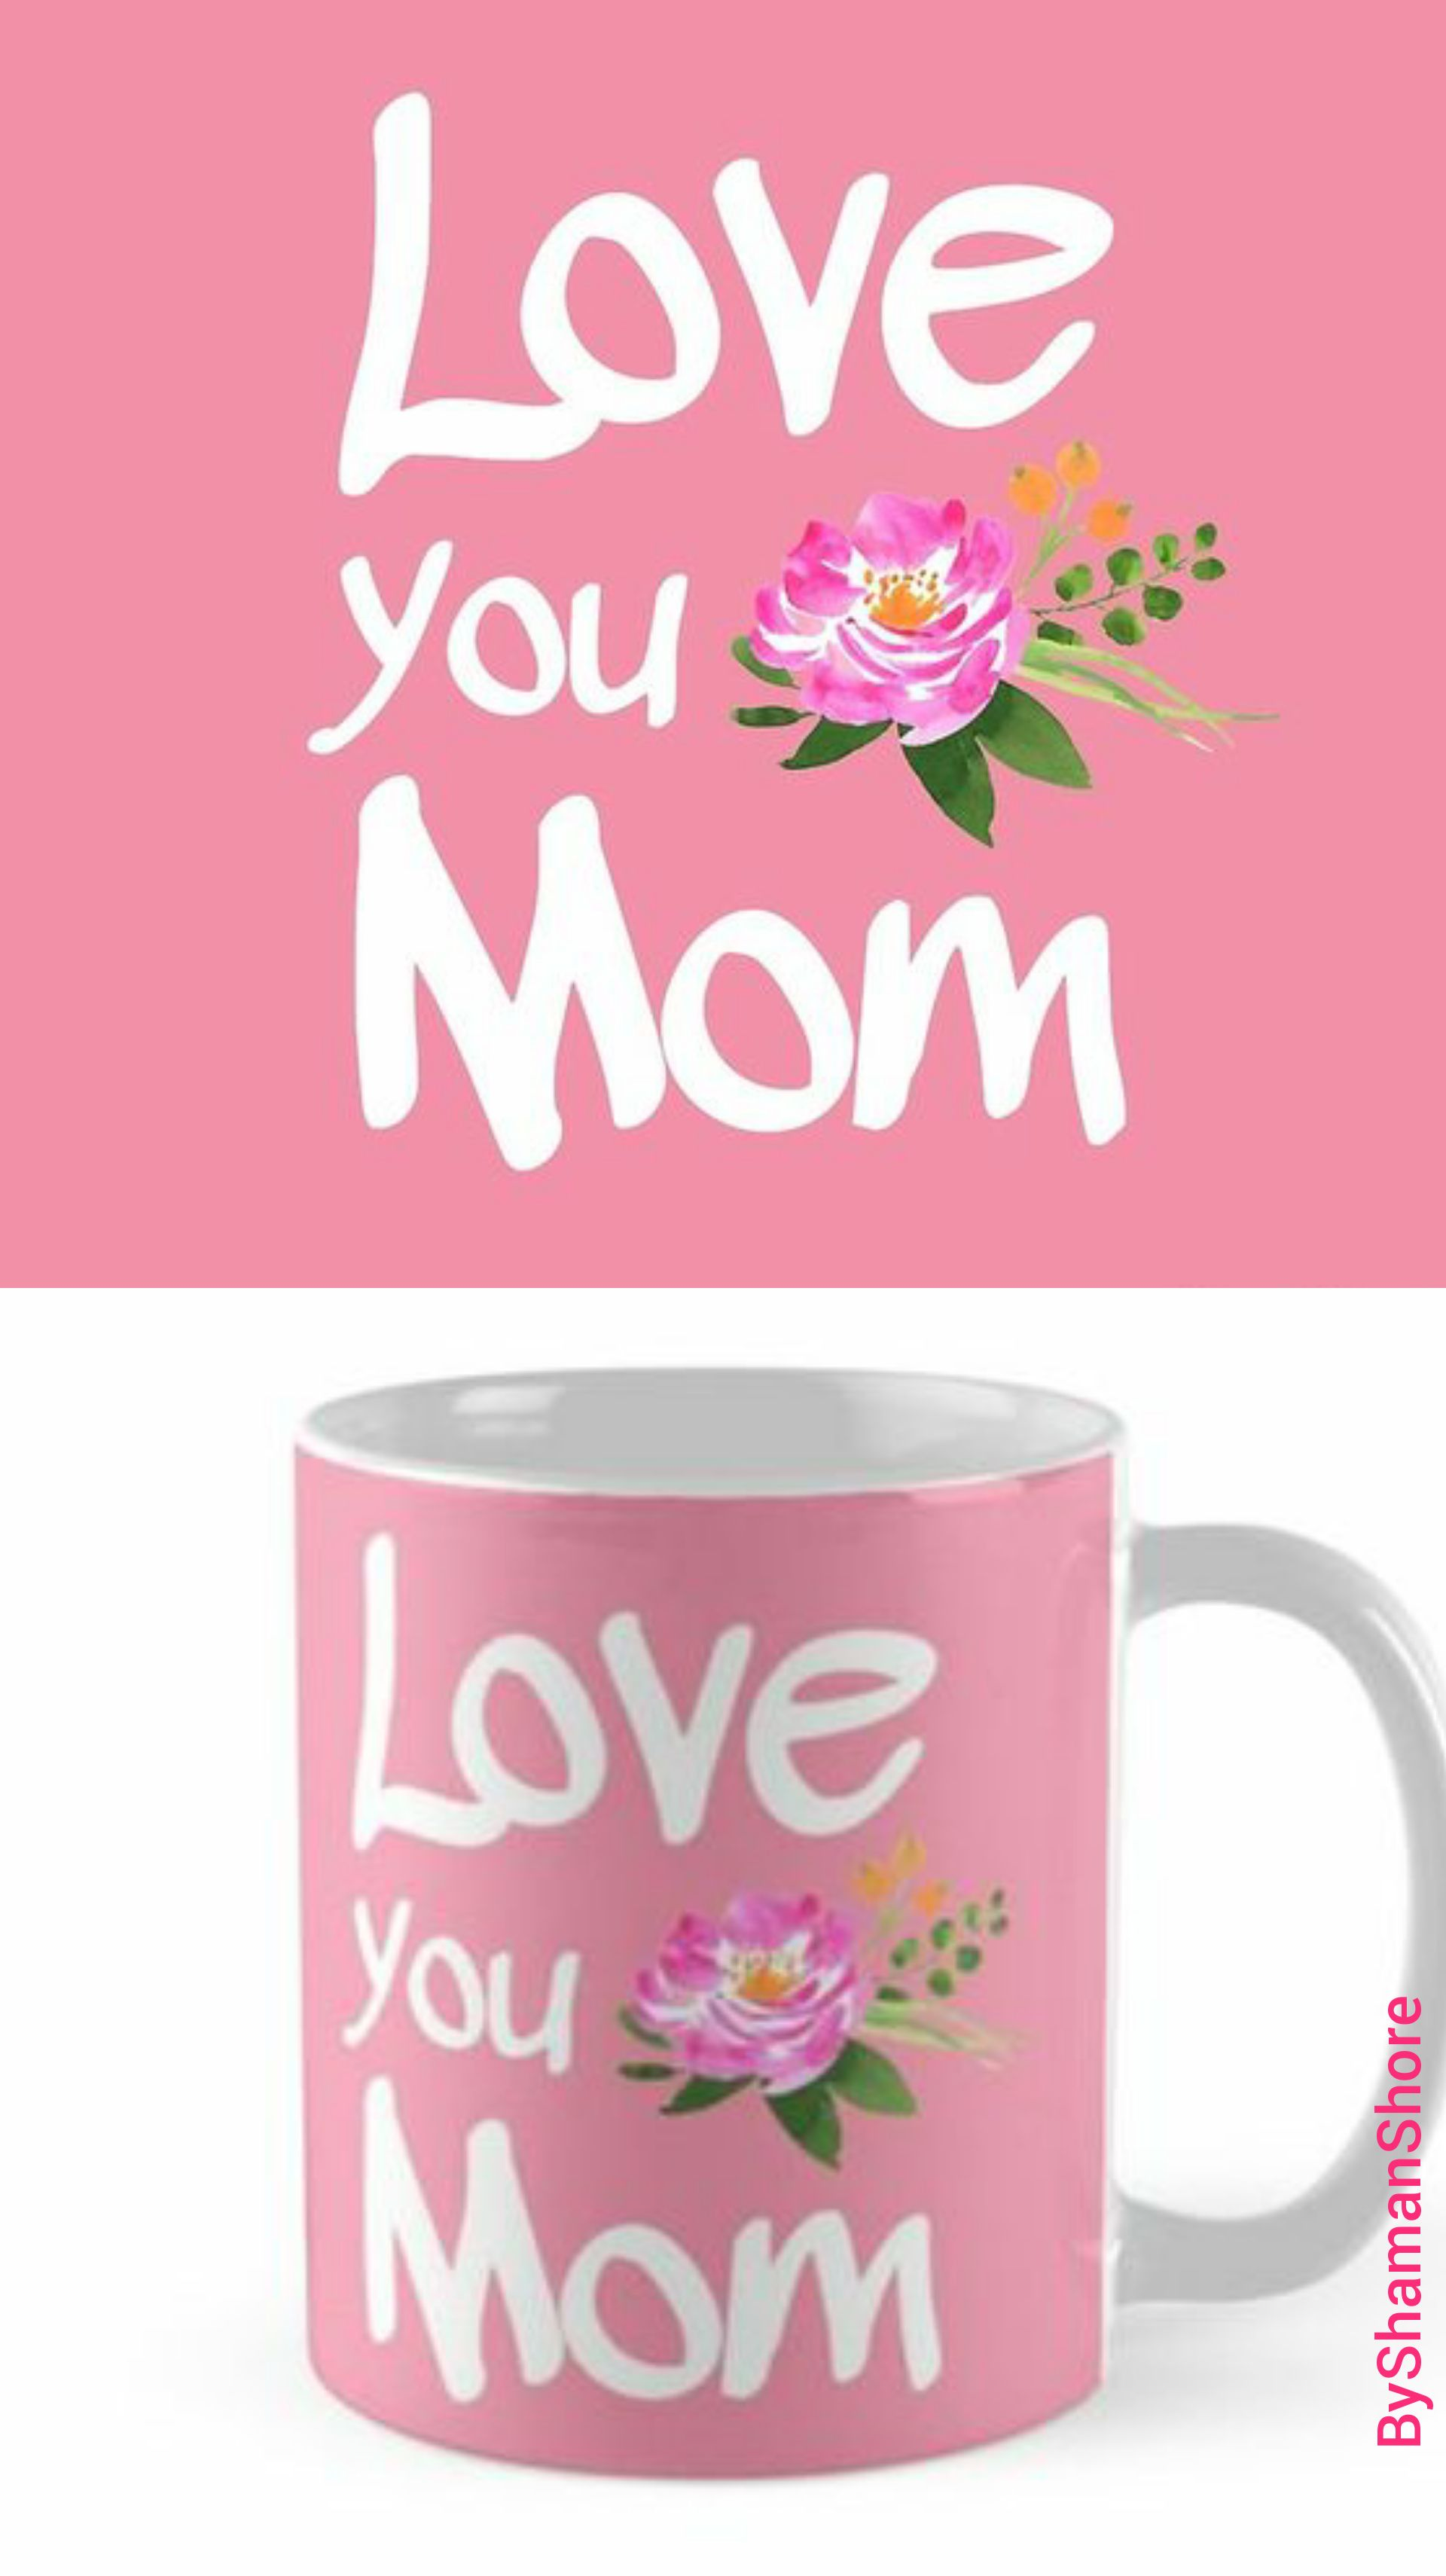 Love You Mom Mothers Day Gifts Byshamanshore Gift For Mom